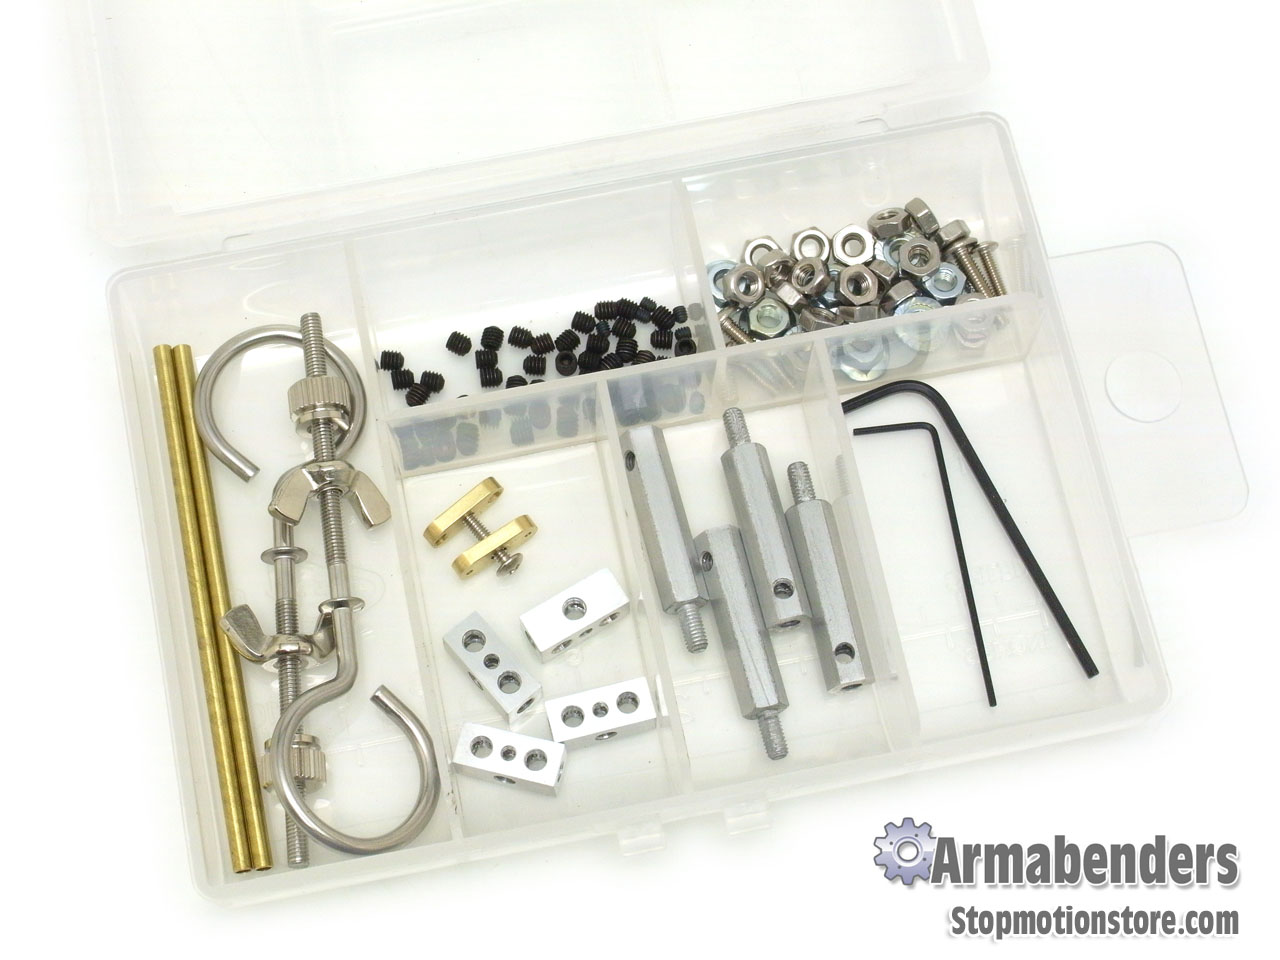 ArmaBenders 2 Armature Kit